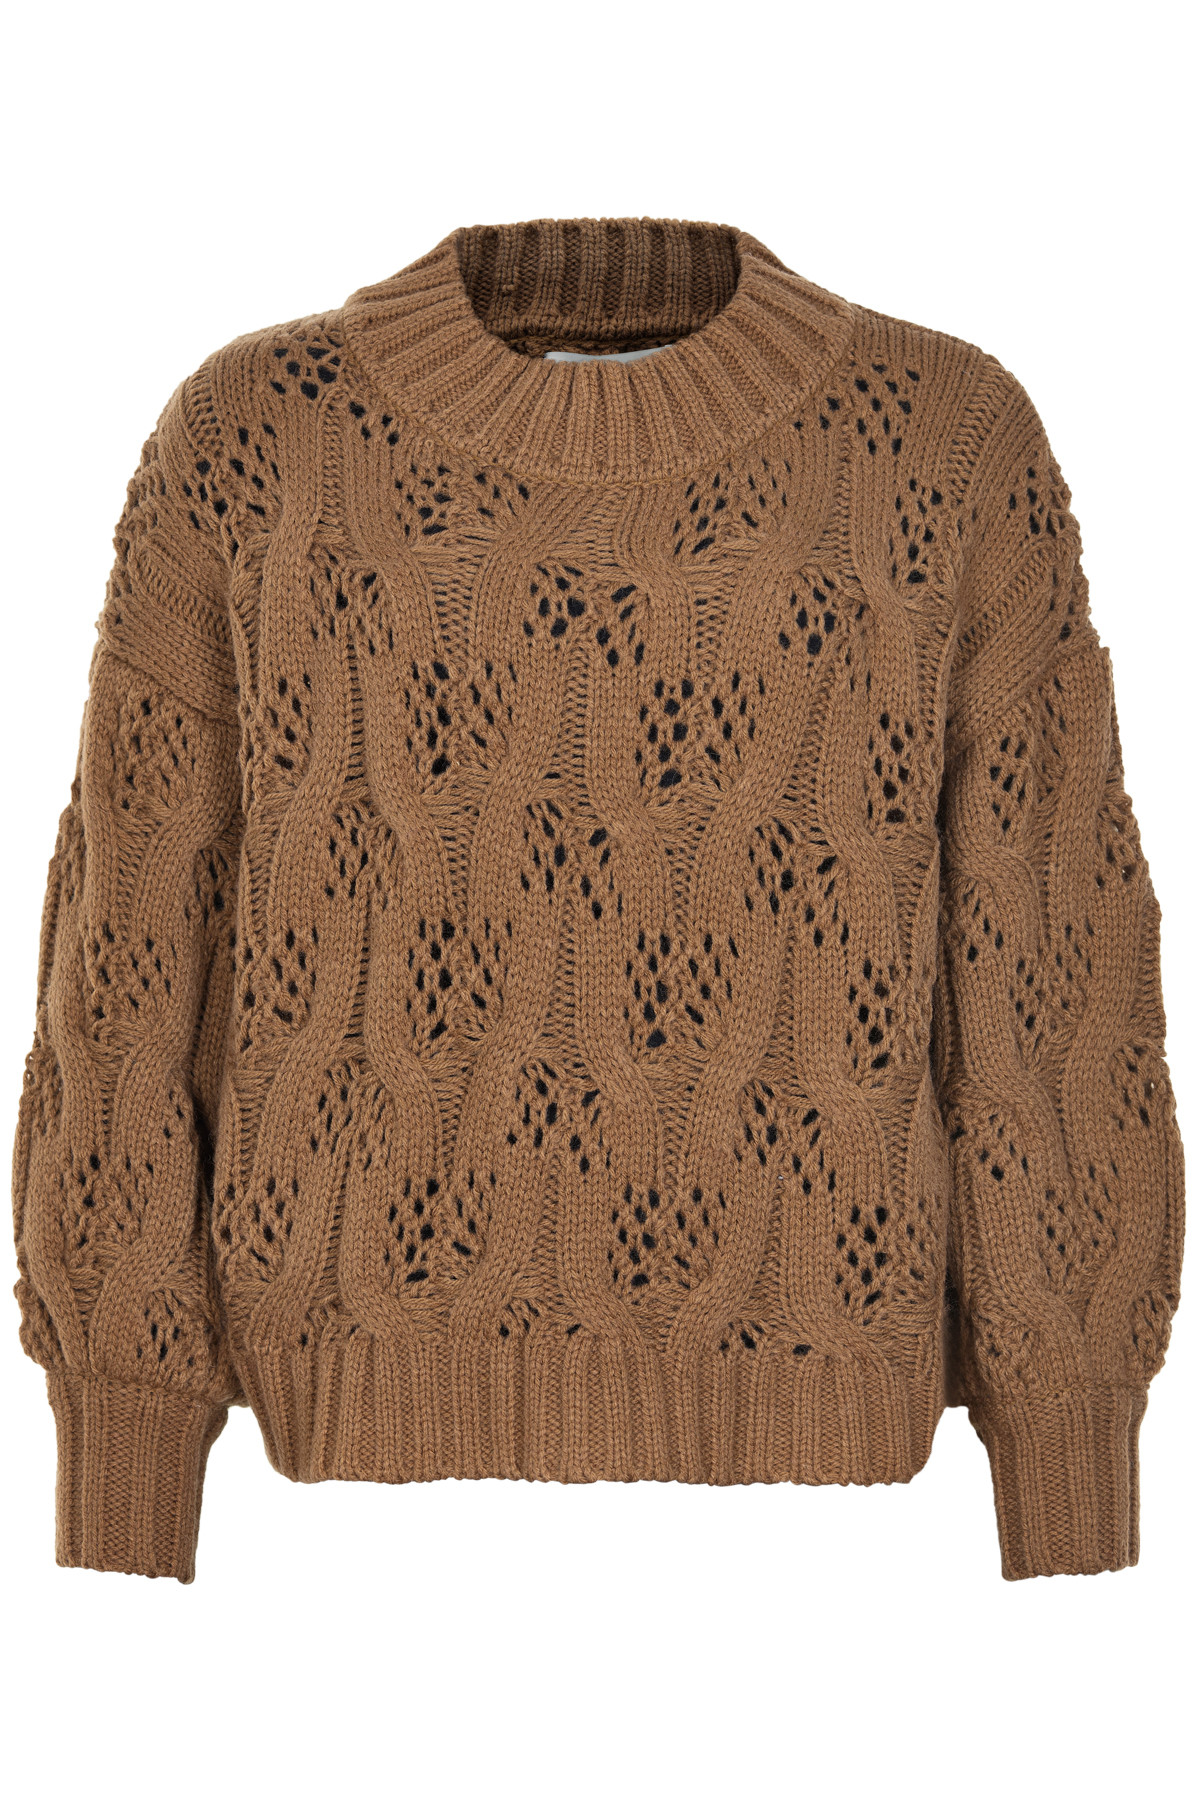 Image of   AND LESS ALHANIE PULLOVER 5519206 (Toasted Coconut, M)